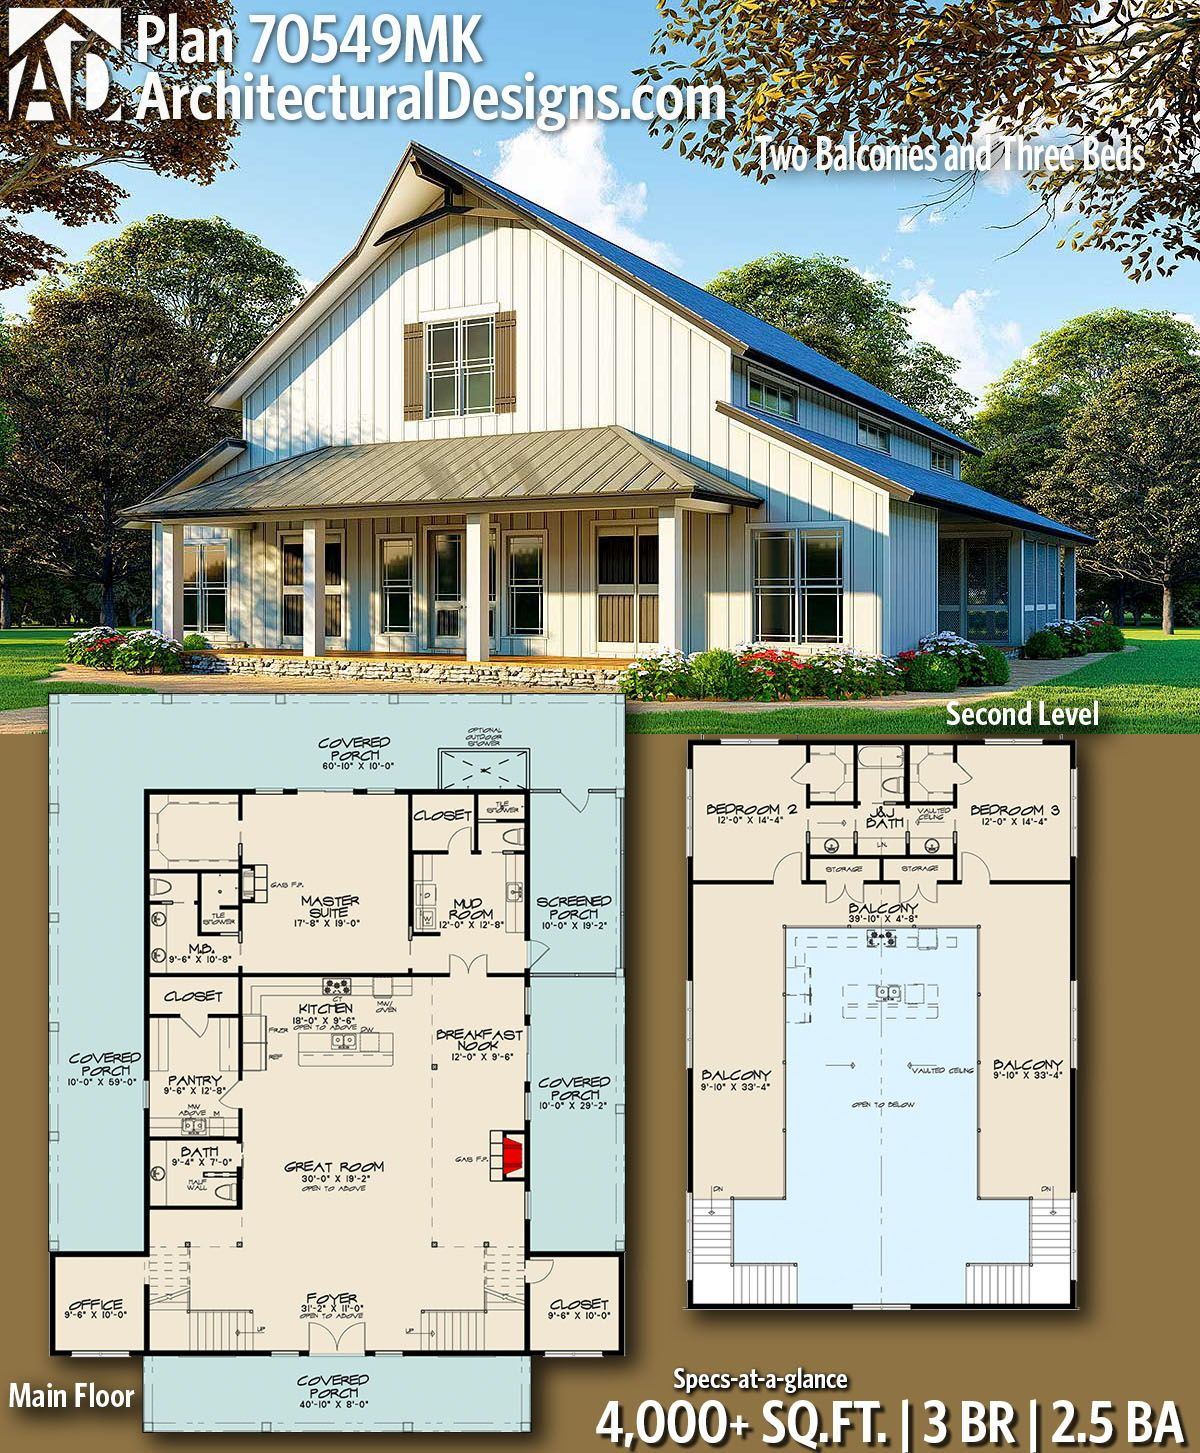 Plan 70549mk 3 Bedroom Barndominium Inspired Country House Plan With Two Balconies Barn Style House Barn House Plans Pole Barn House Plans